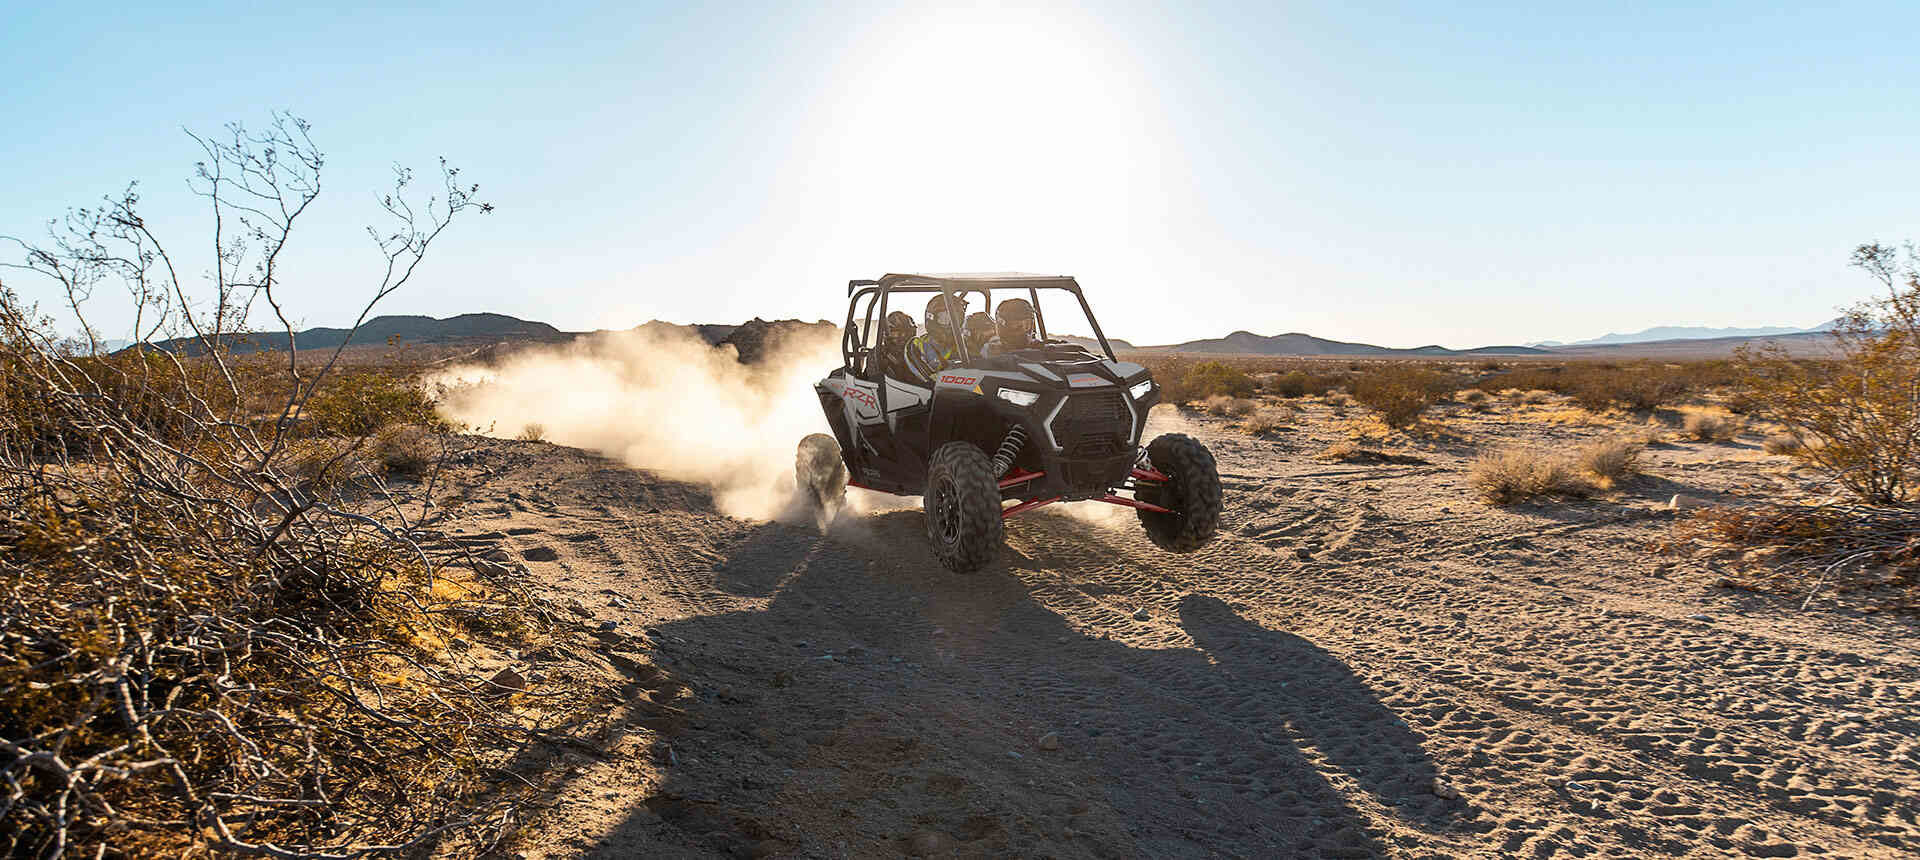 2020 RZR® XP 4 1000 Limited Edition Instagram image 5